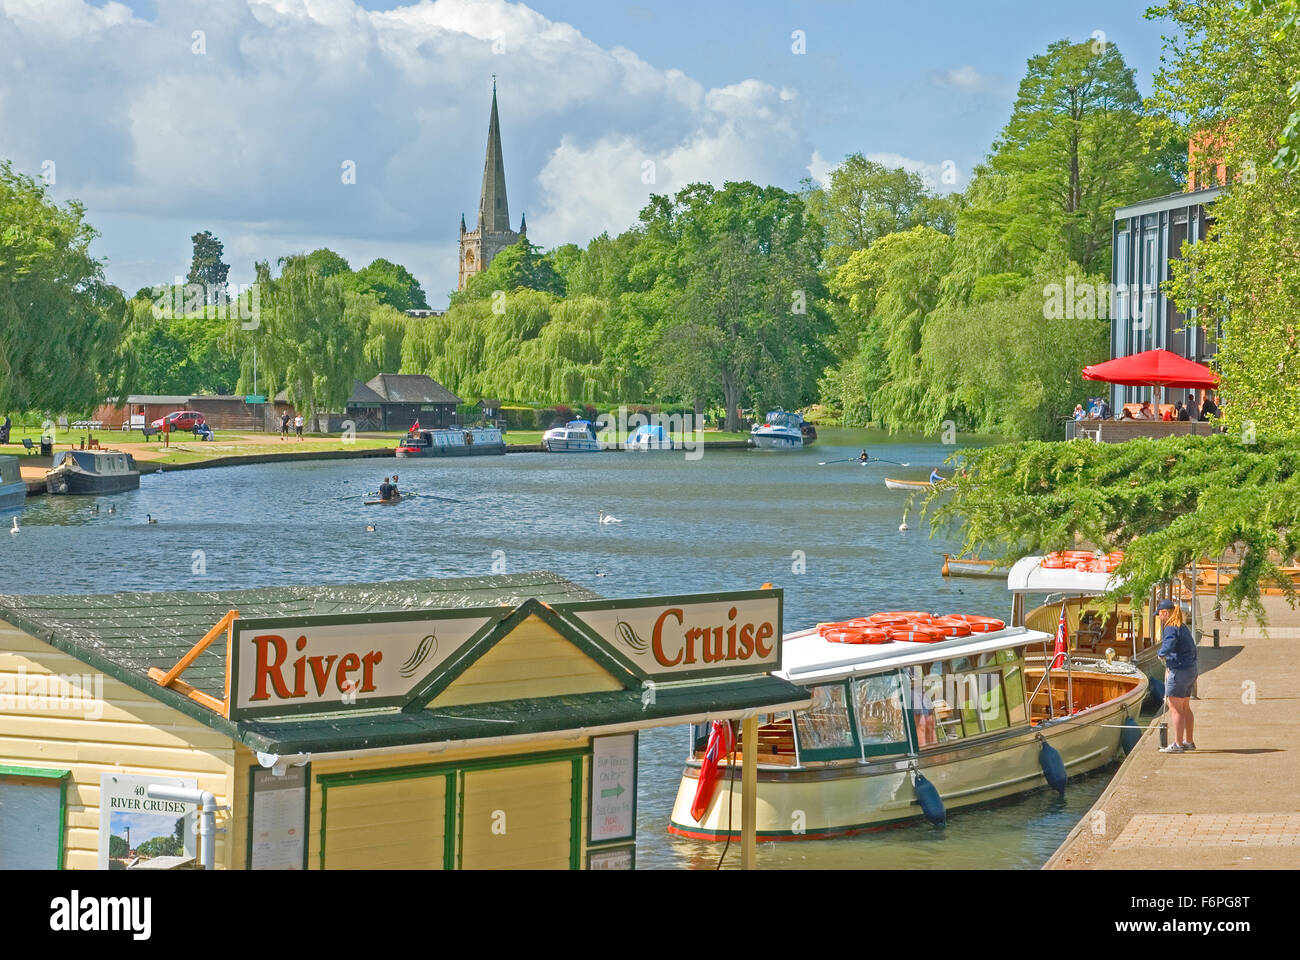 The River Avon in Stratford upon Avon, with a view towards Holy Trinity Church, burial place of Willam Shakespeare - Stock Image